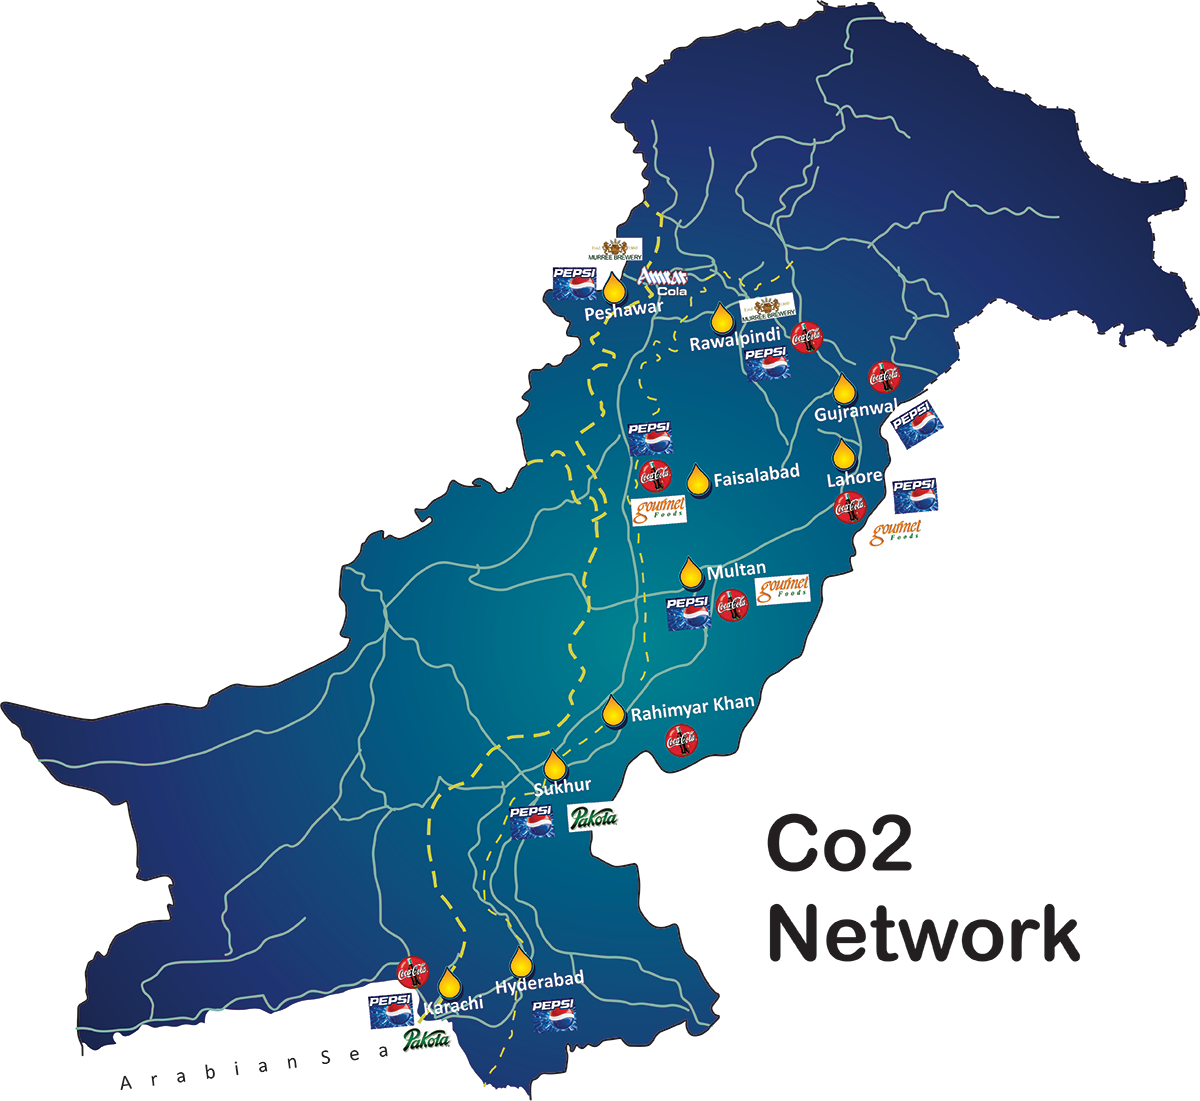 Co2-Network